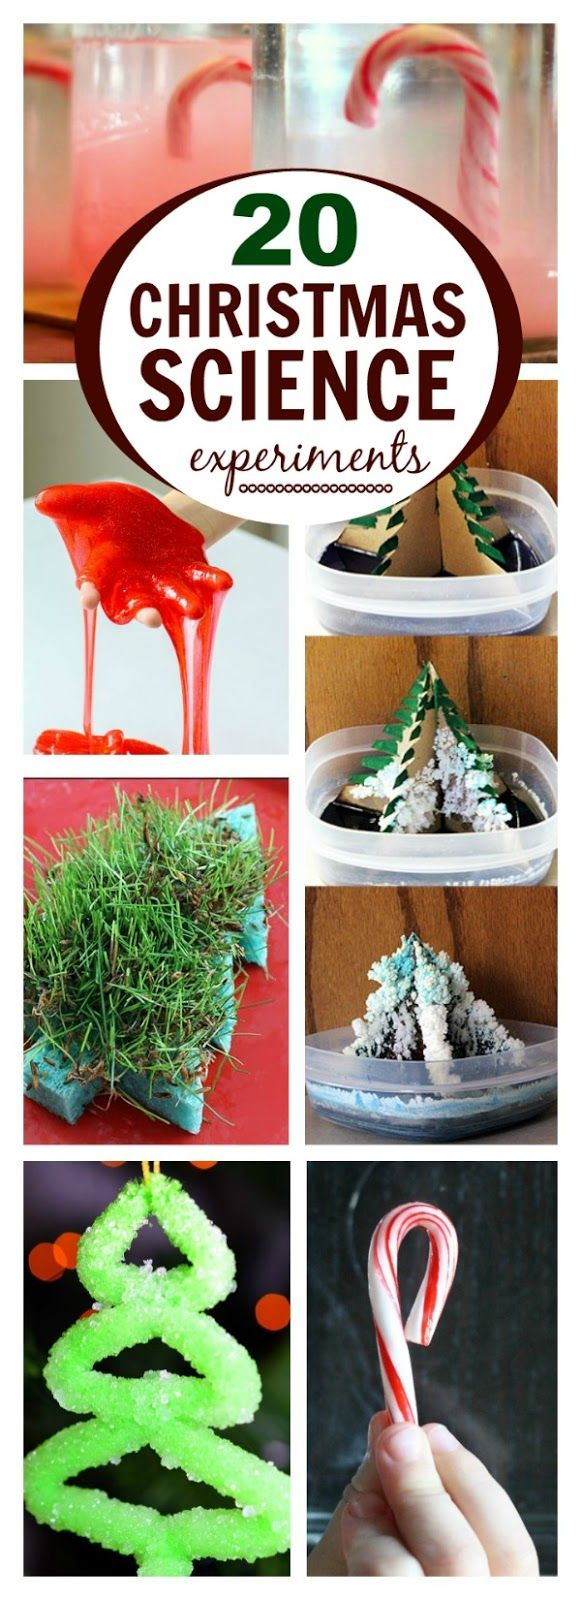 20 MAGICAL CHRISTMAS SCIENCE EXPERIMENTS FOR KIDS                                                                                                                                                                                 More